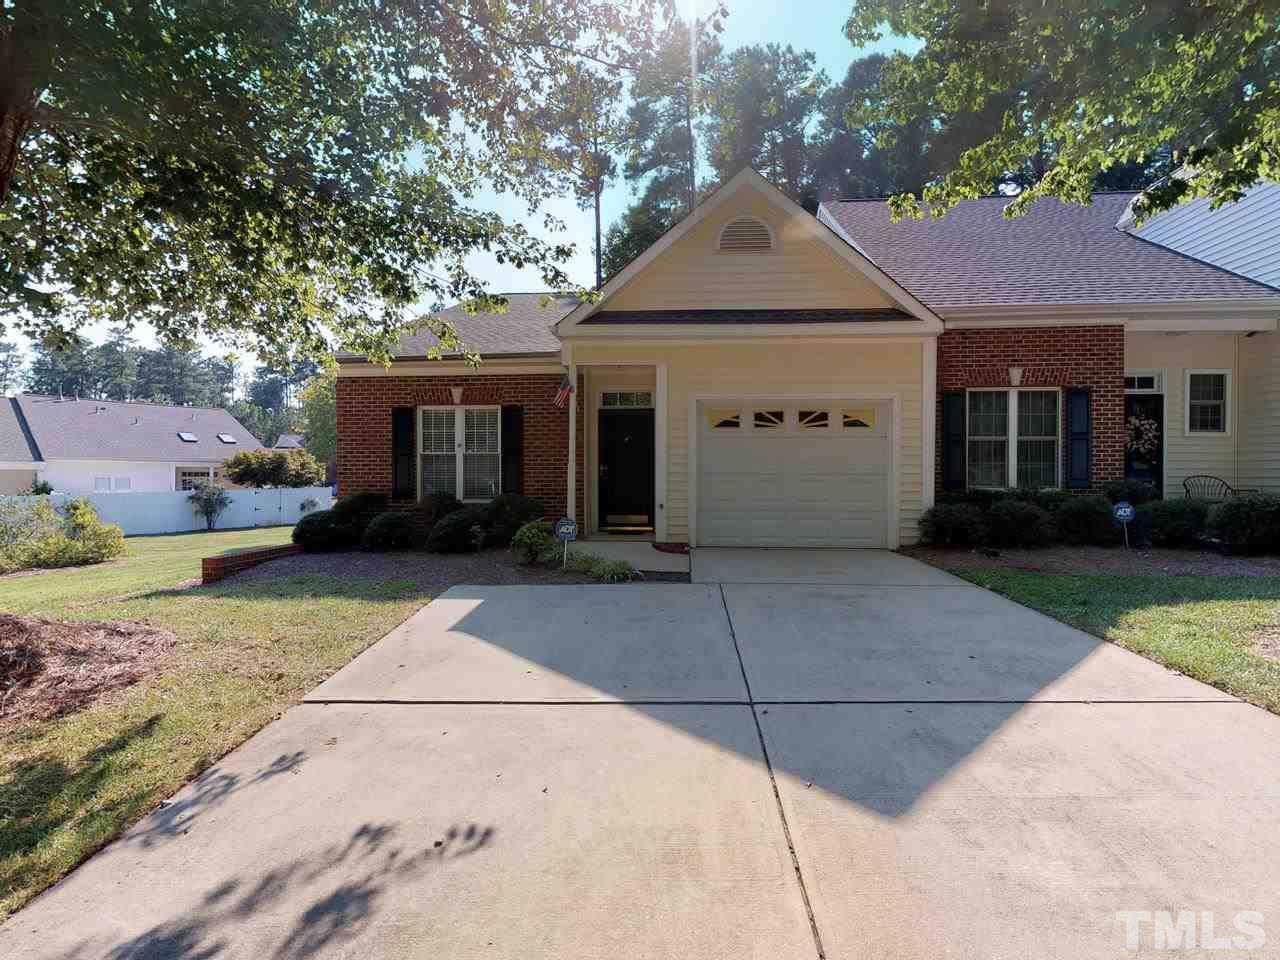 3040 Coxindale Drive - Photo 1